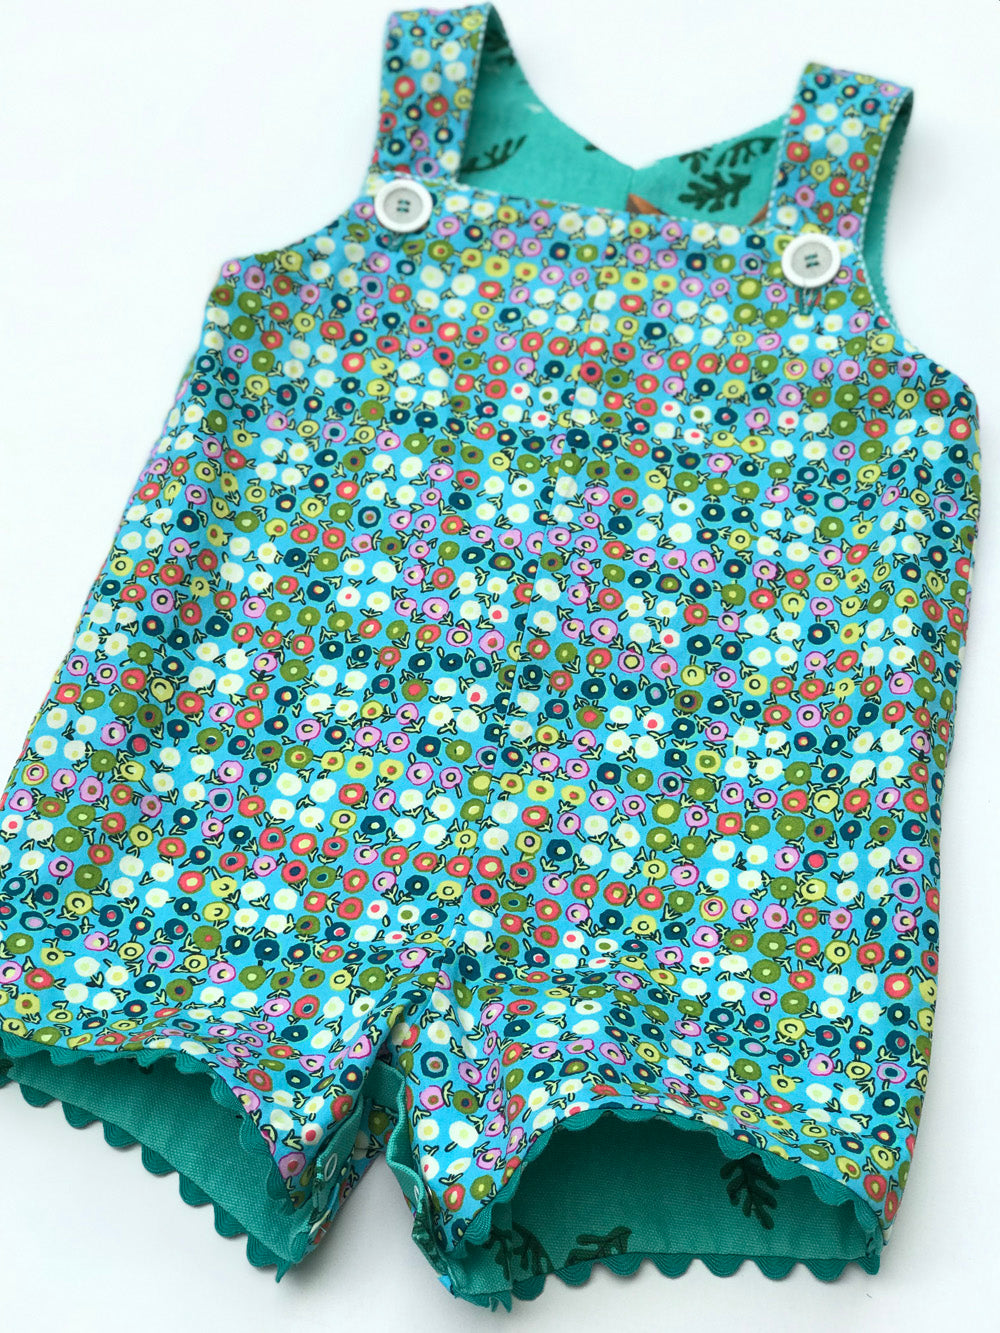 reversible shortalls in Charley Harper vireo and buttercups - little girl Pearl